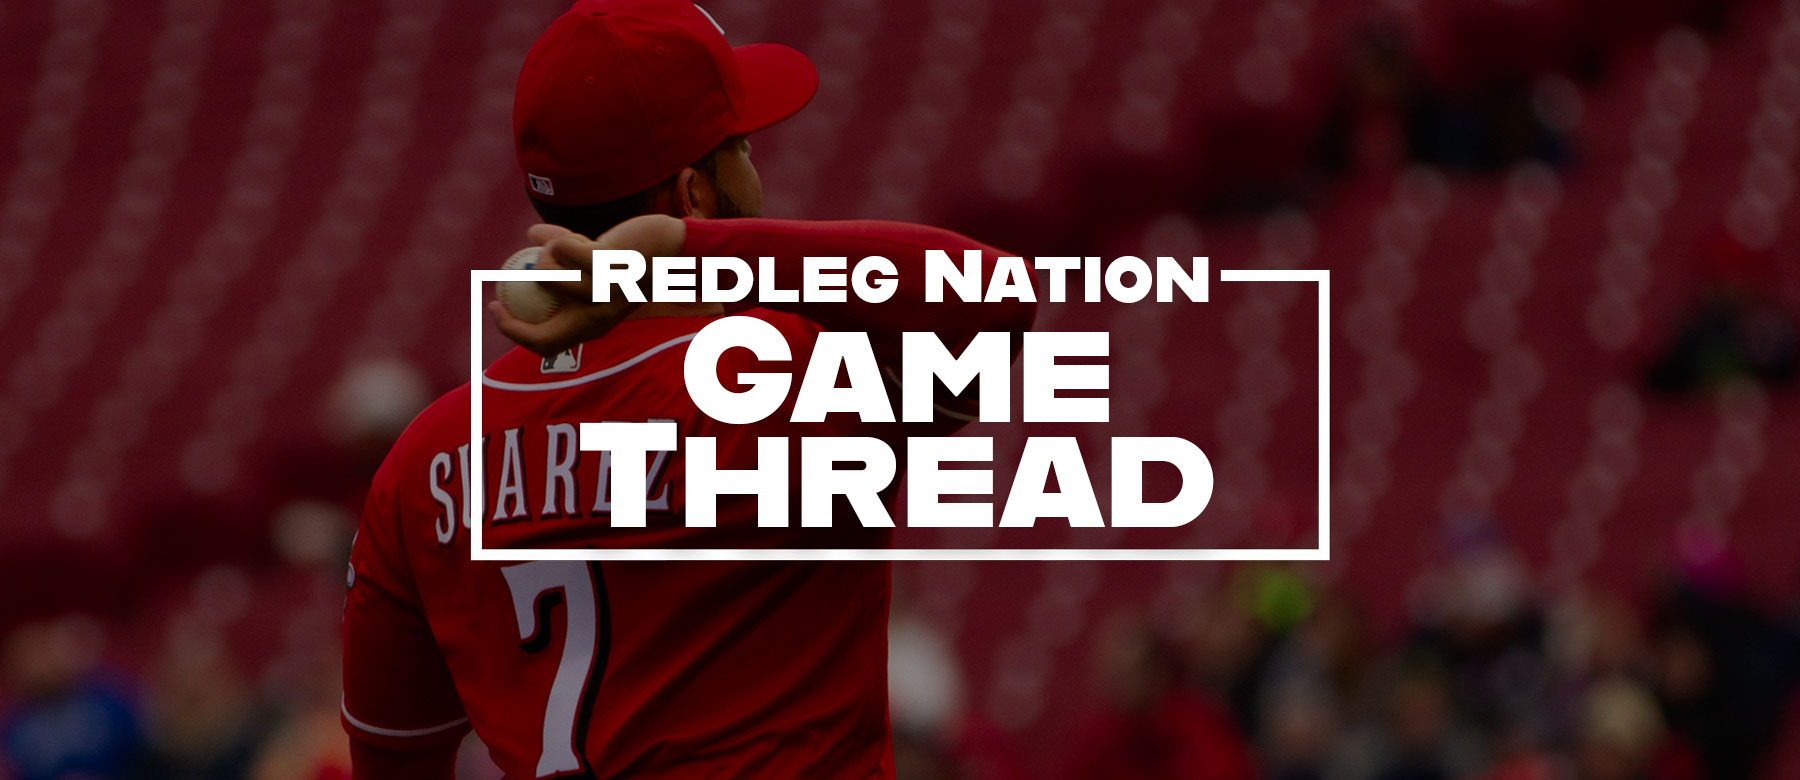 Reds vs. Rockies – July 14, 2019 - Redleg Nation